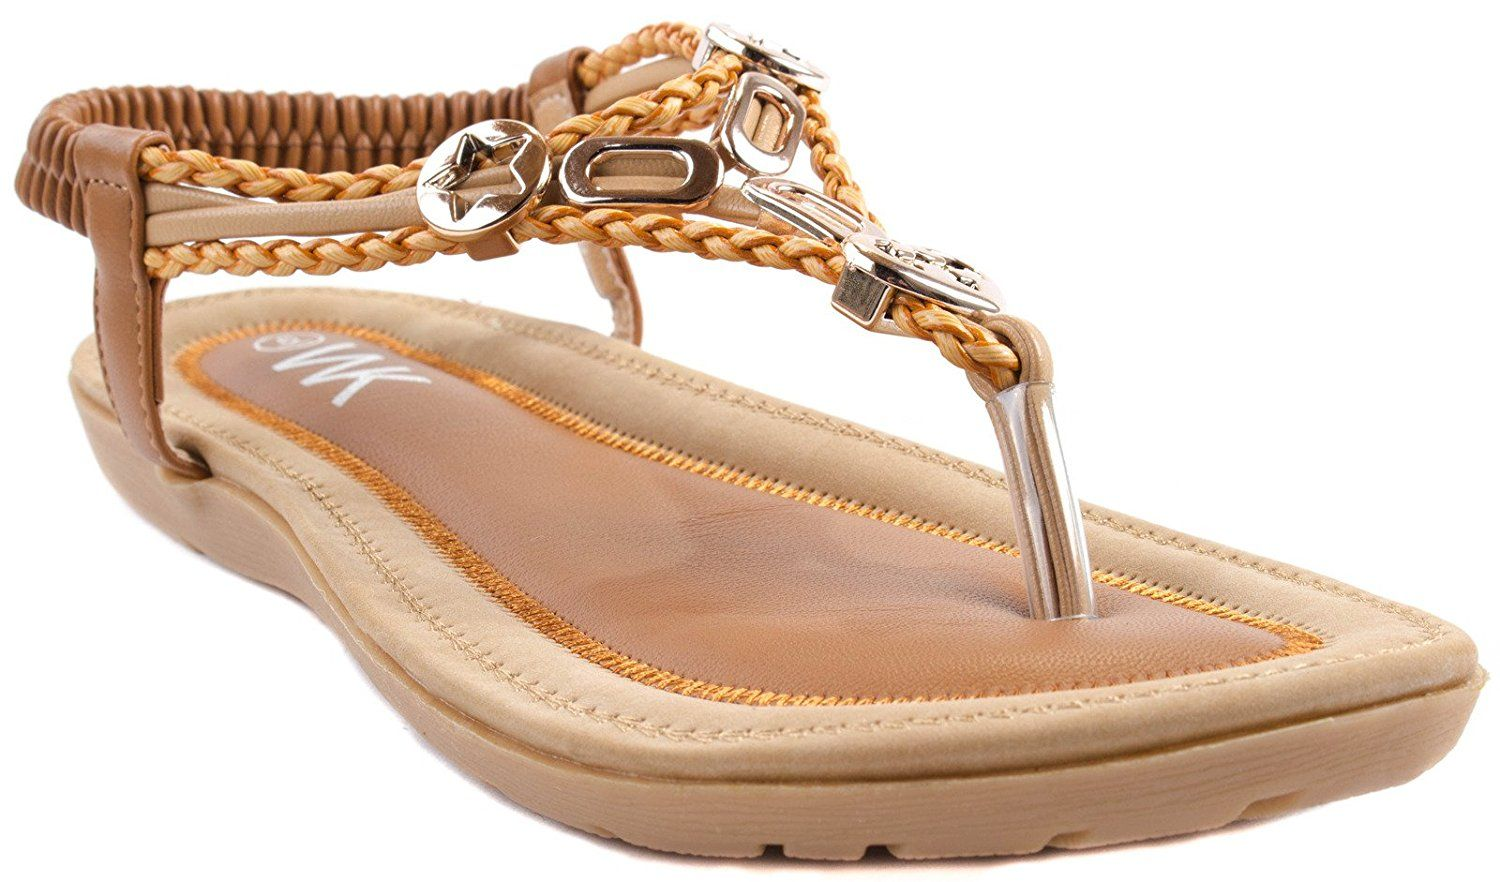 159e37e79 WK Shoes Women's DB-88 Crp Leather Sandals with Decorative Studs of  Different Shapes * Click image for more details. #womenshoe